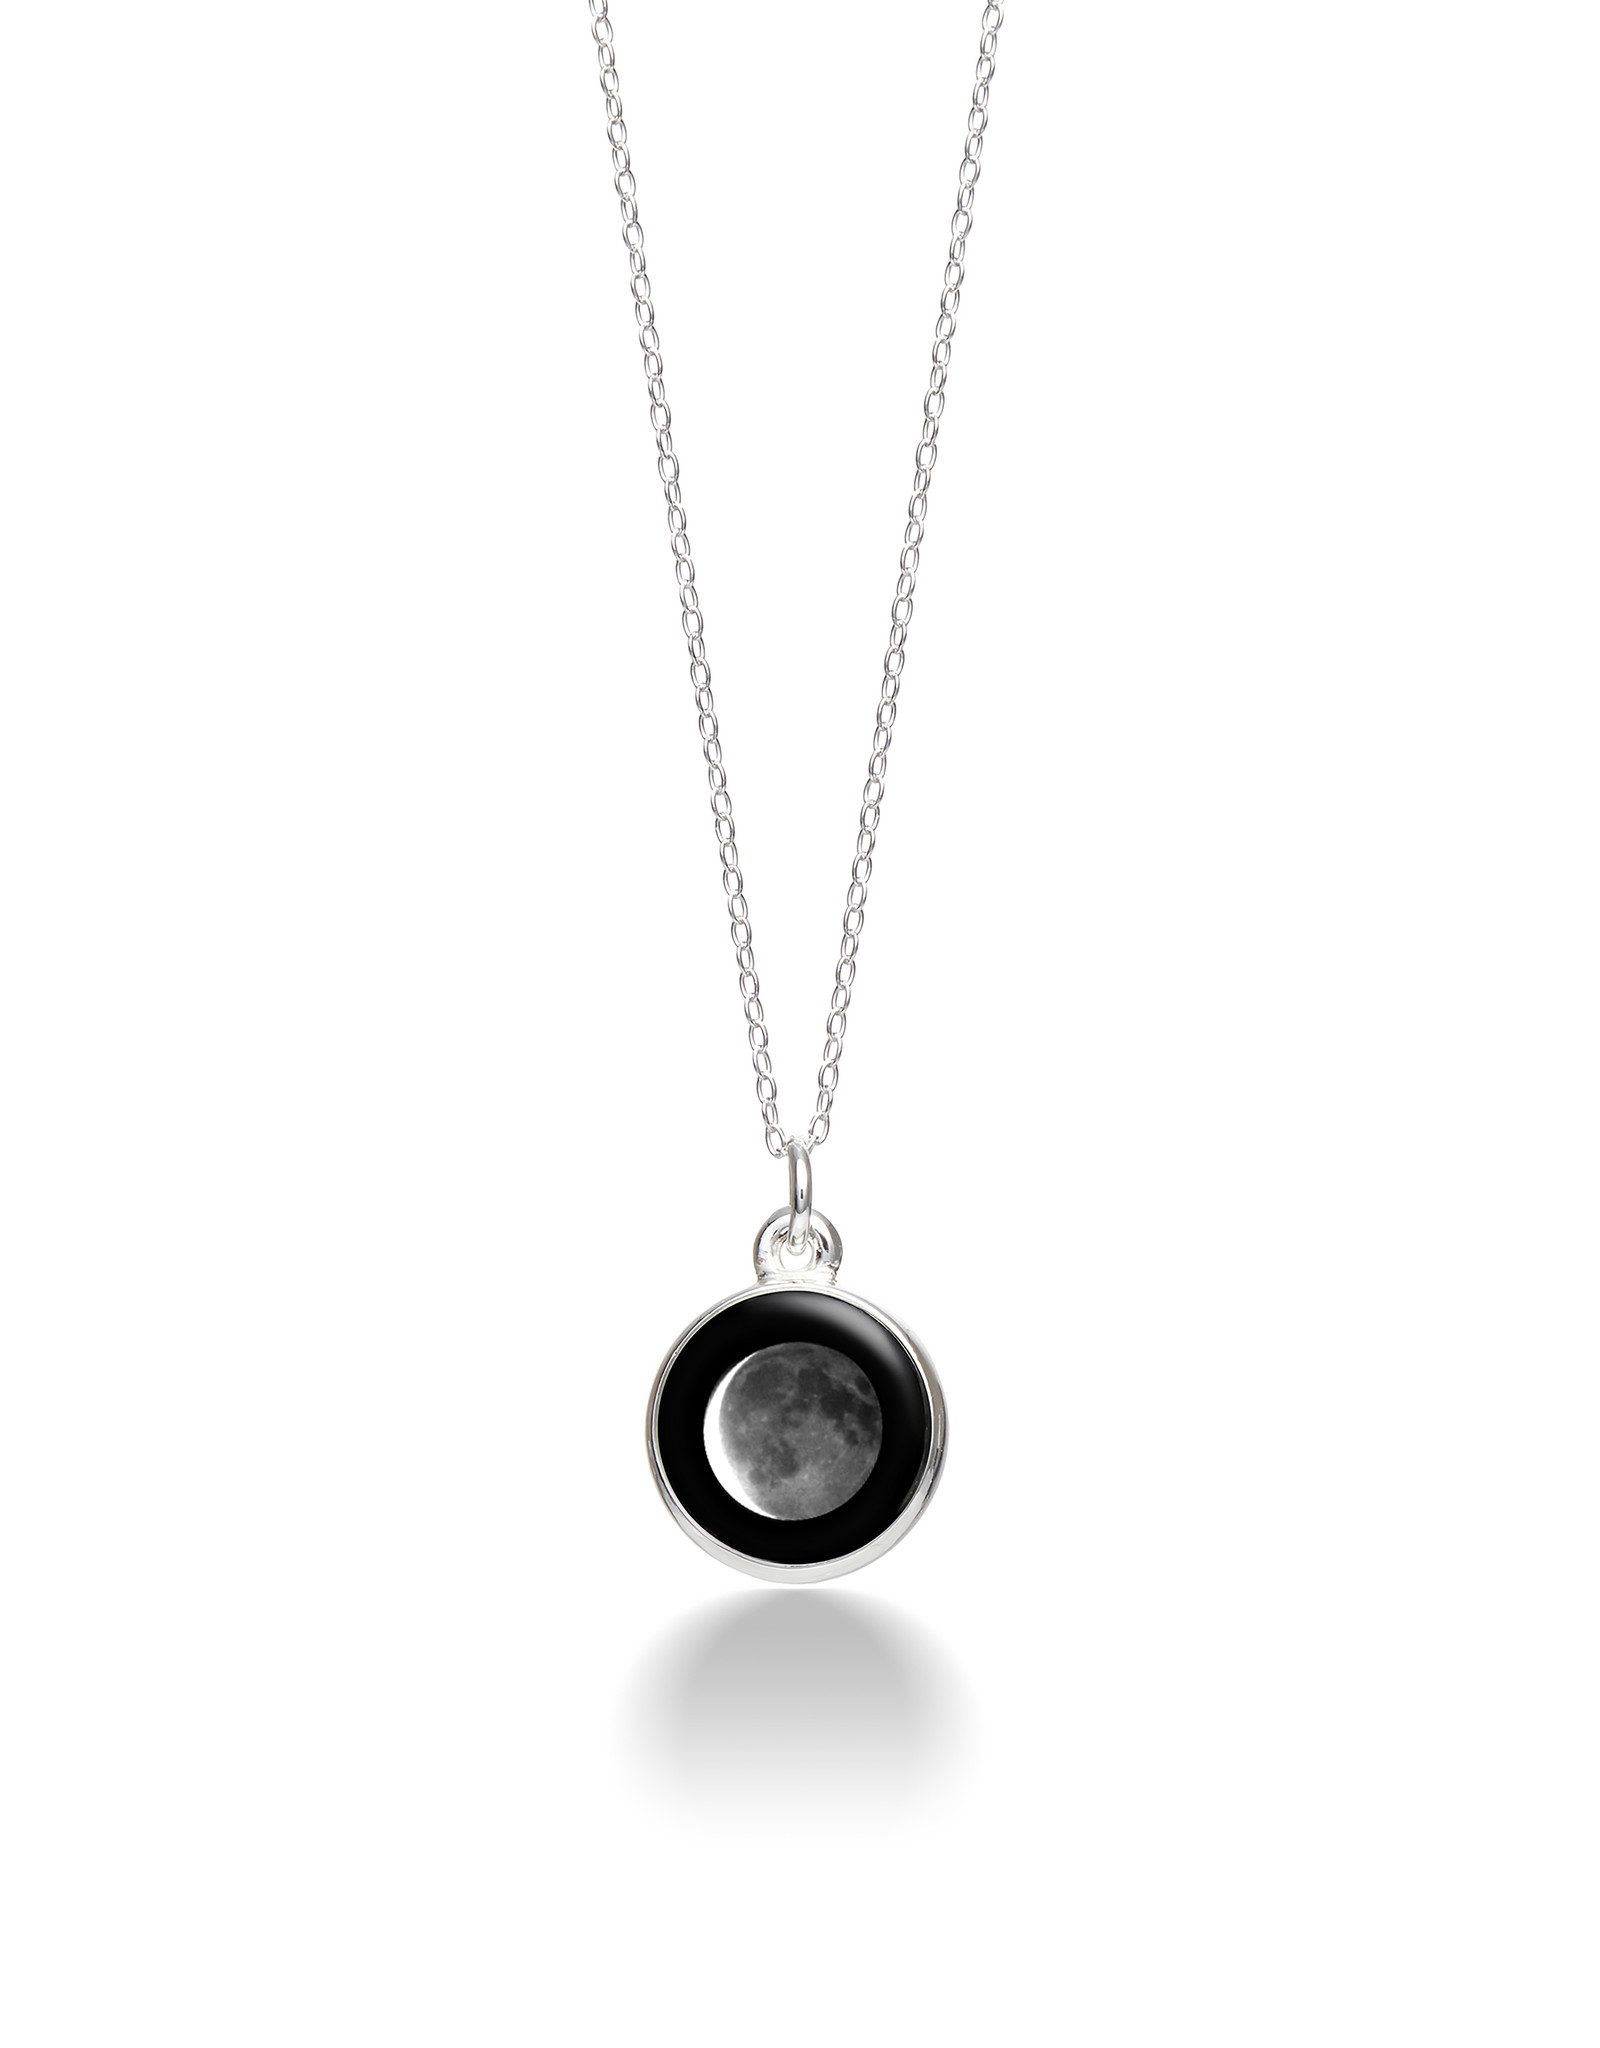 Moonglow Jewelry Moonglow Charmed Simplicity Necklace